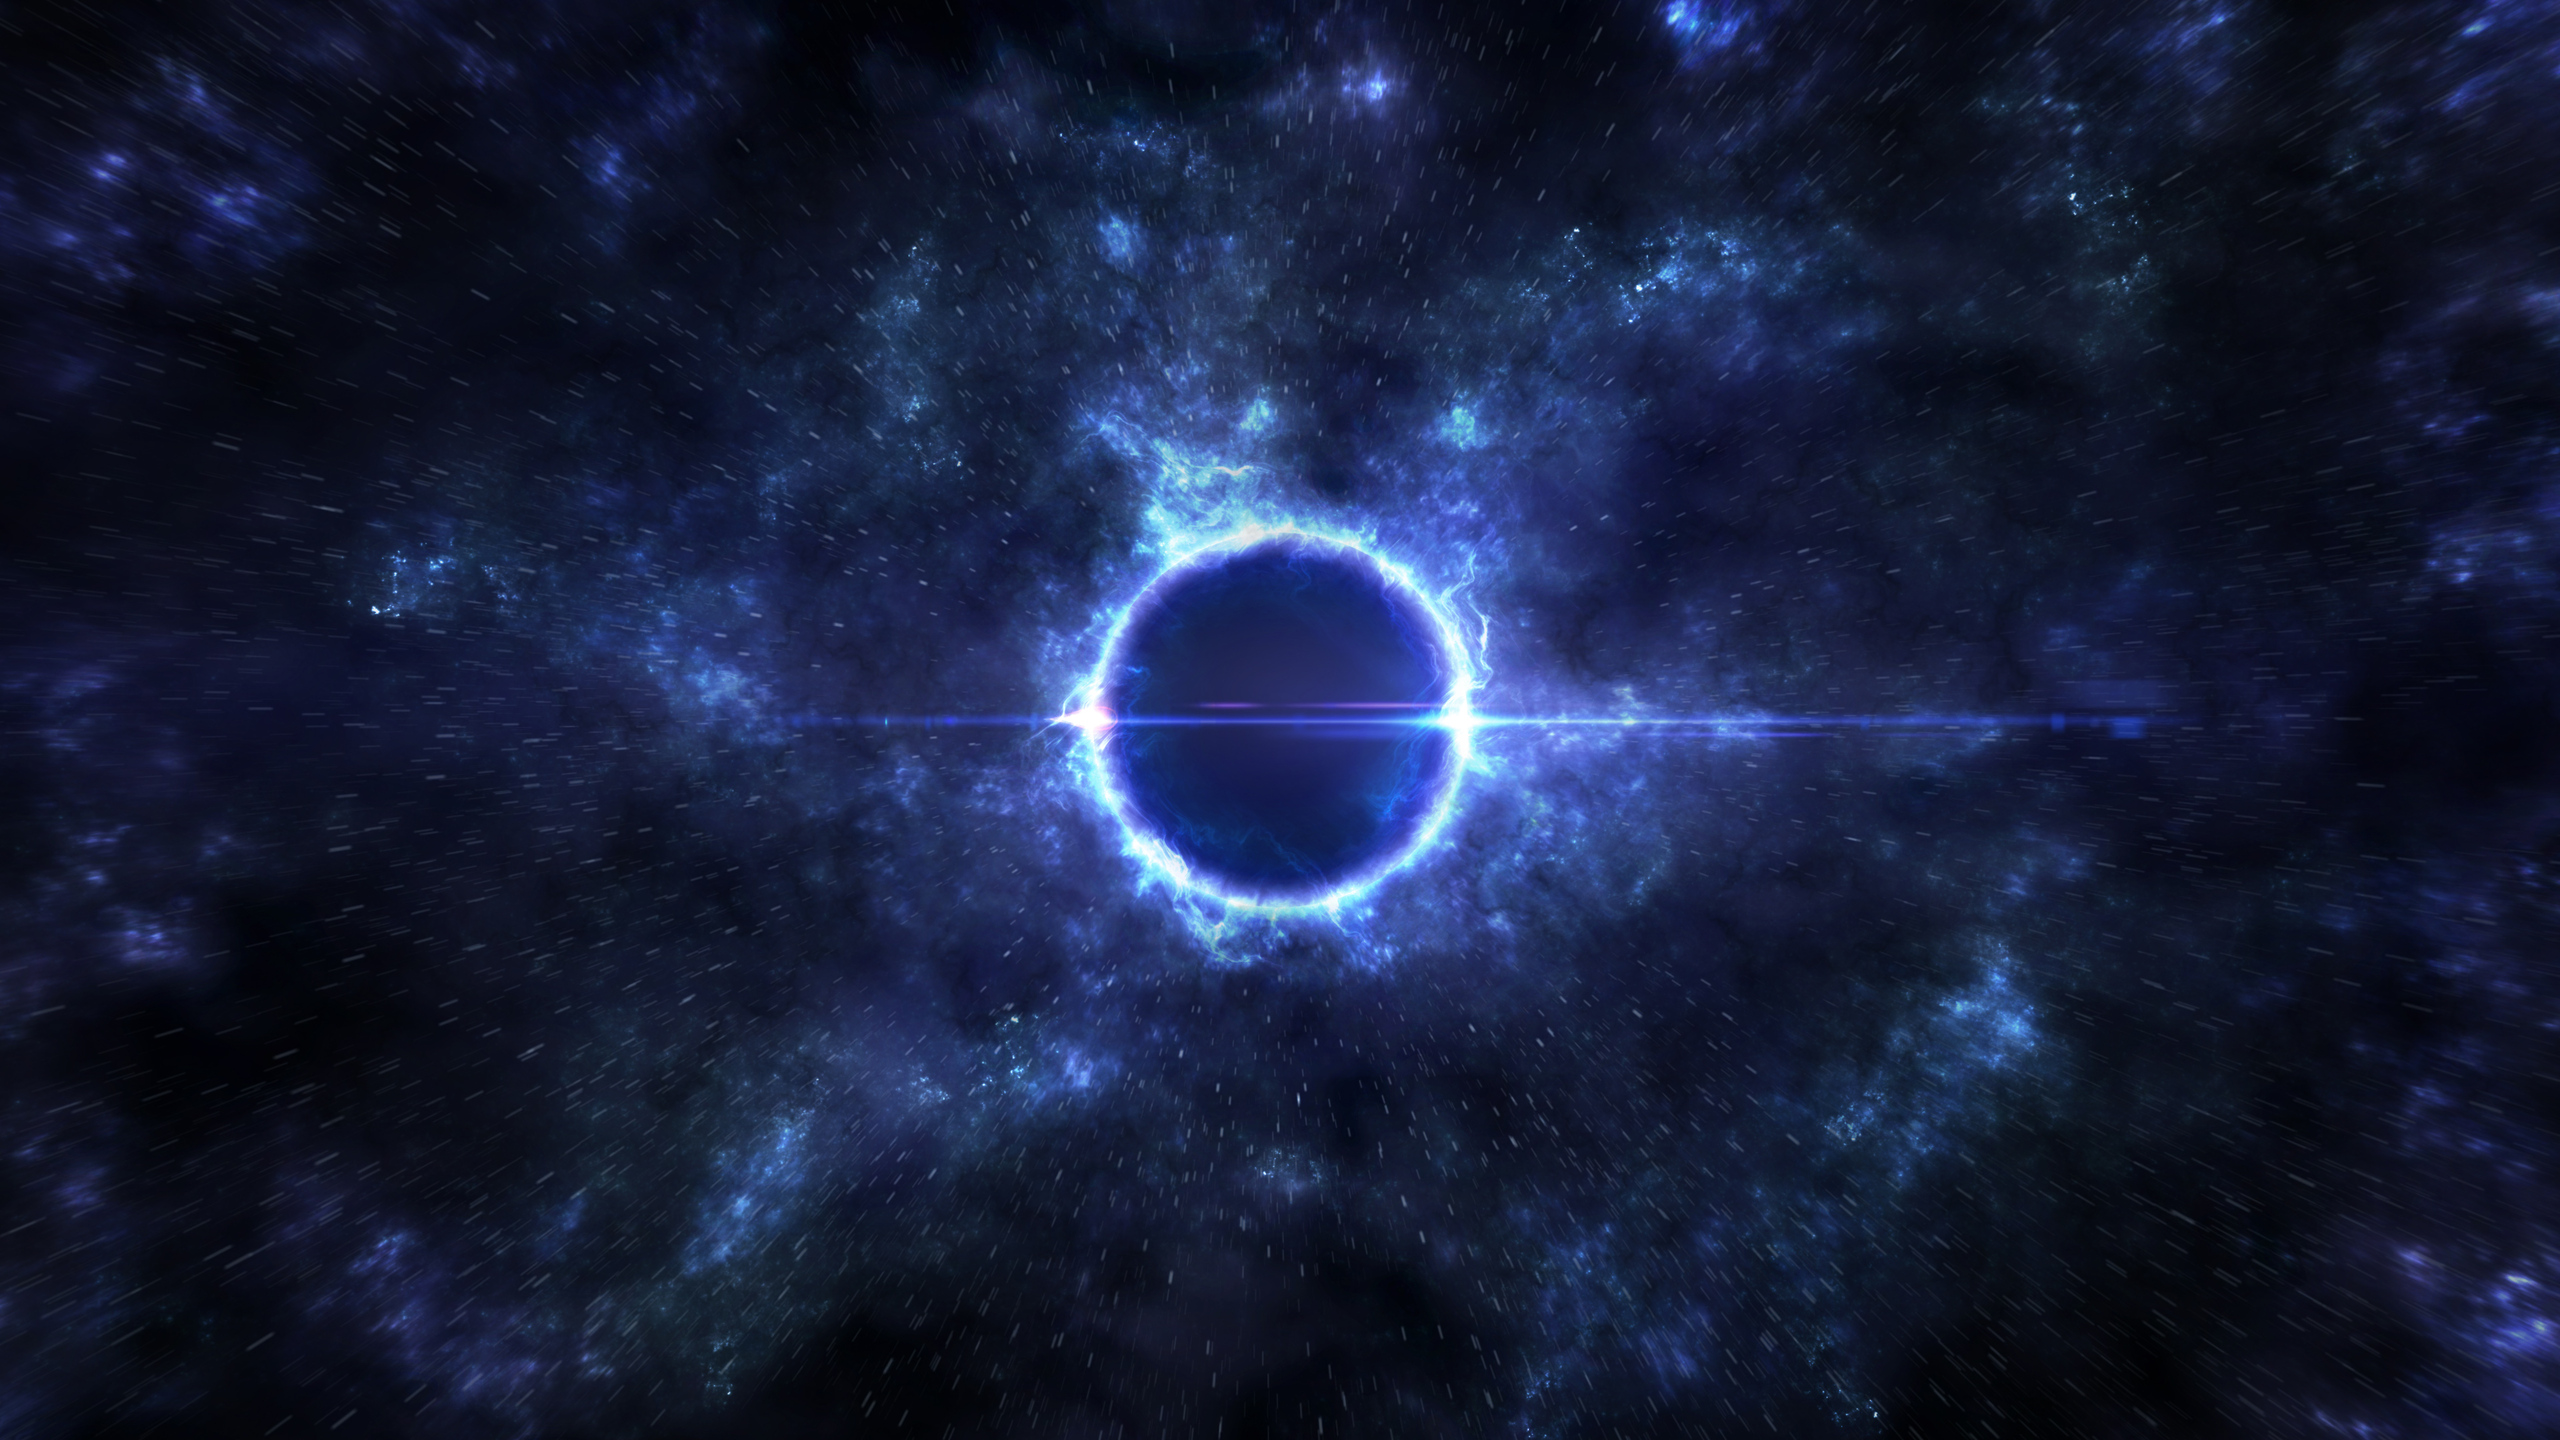 2560x1440 Black Hole Gateway 4k 1440p Resolution Hd 4k Wallpapers Images Backgrounds Photos And Pictures